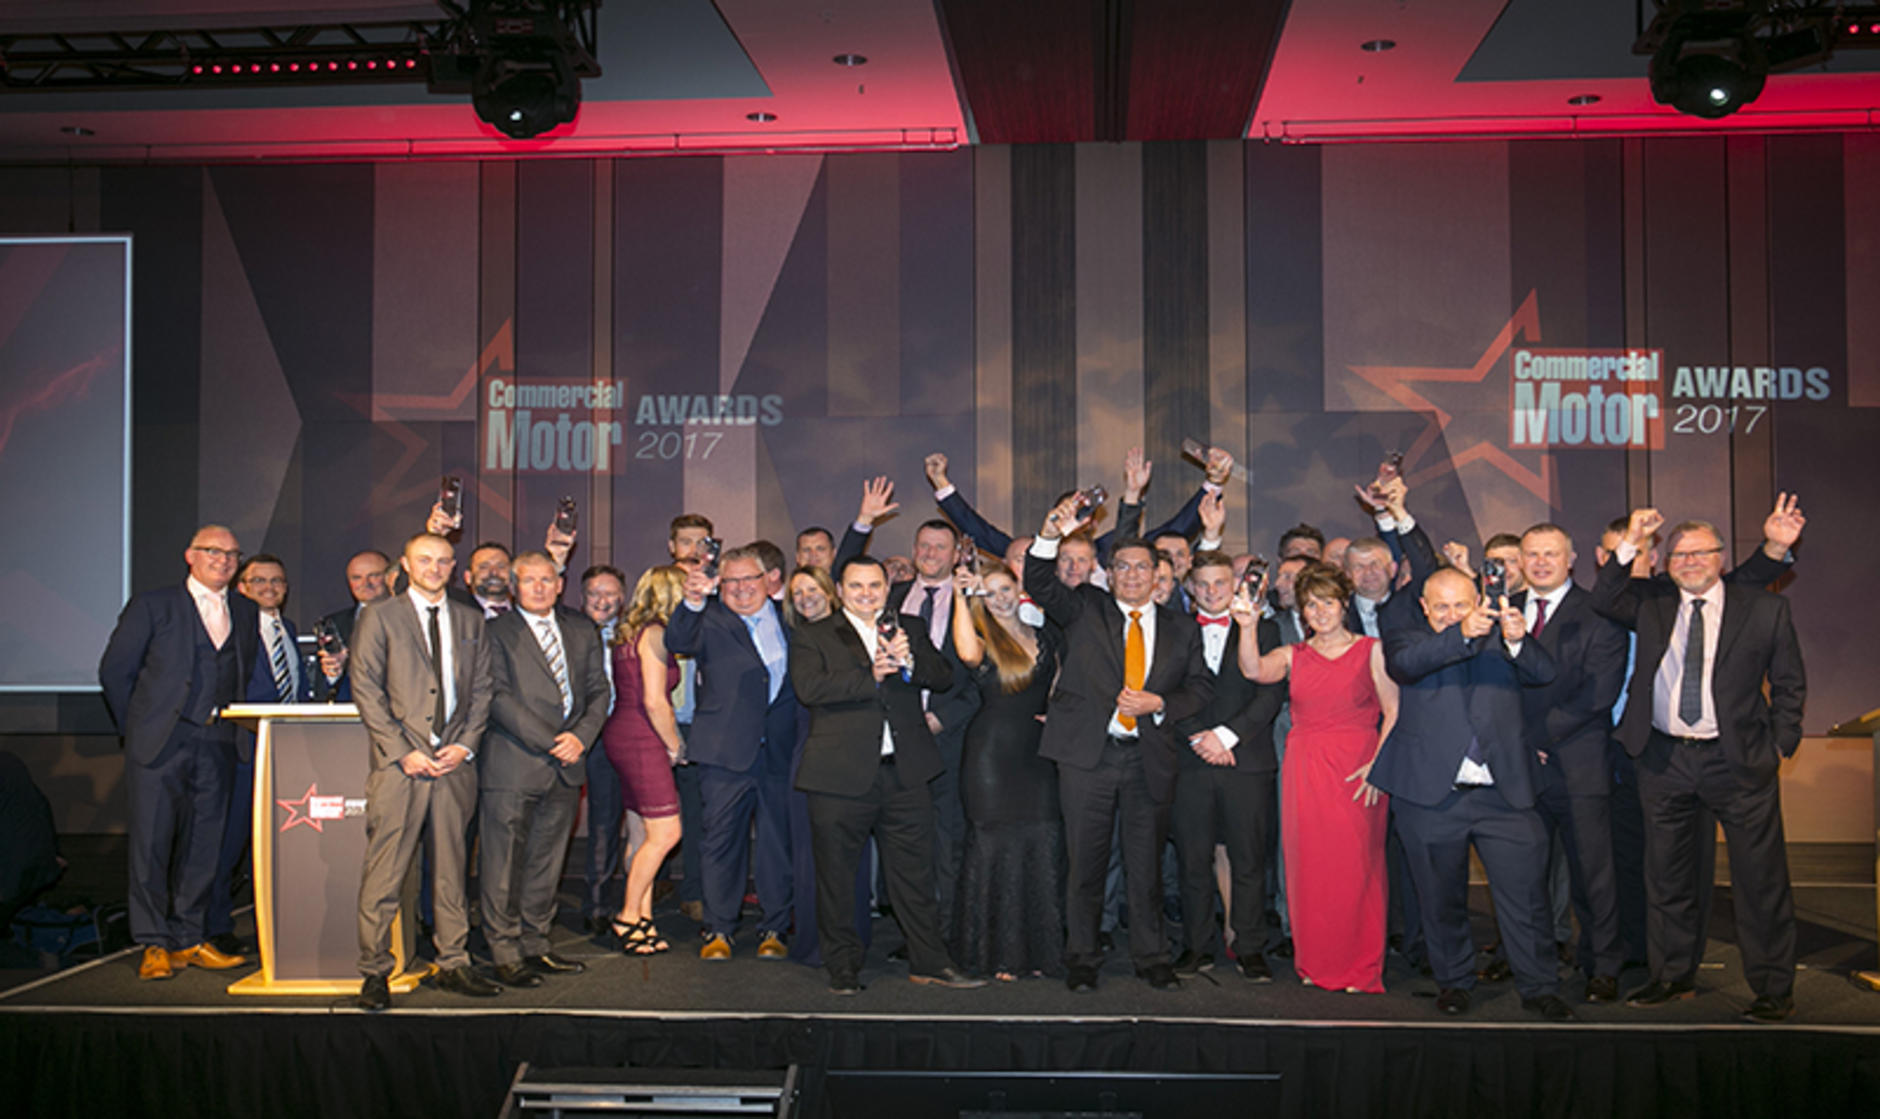 e7a9c3397ff898 ... Huddersfield-based Mac s Truck Sales and Mercedes-Benz dealer Rygor  Commercials led the way in nominations for a Commercial Motor Award